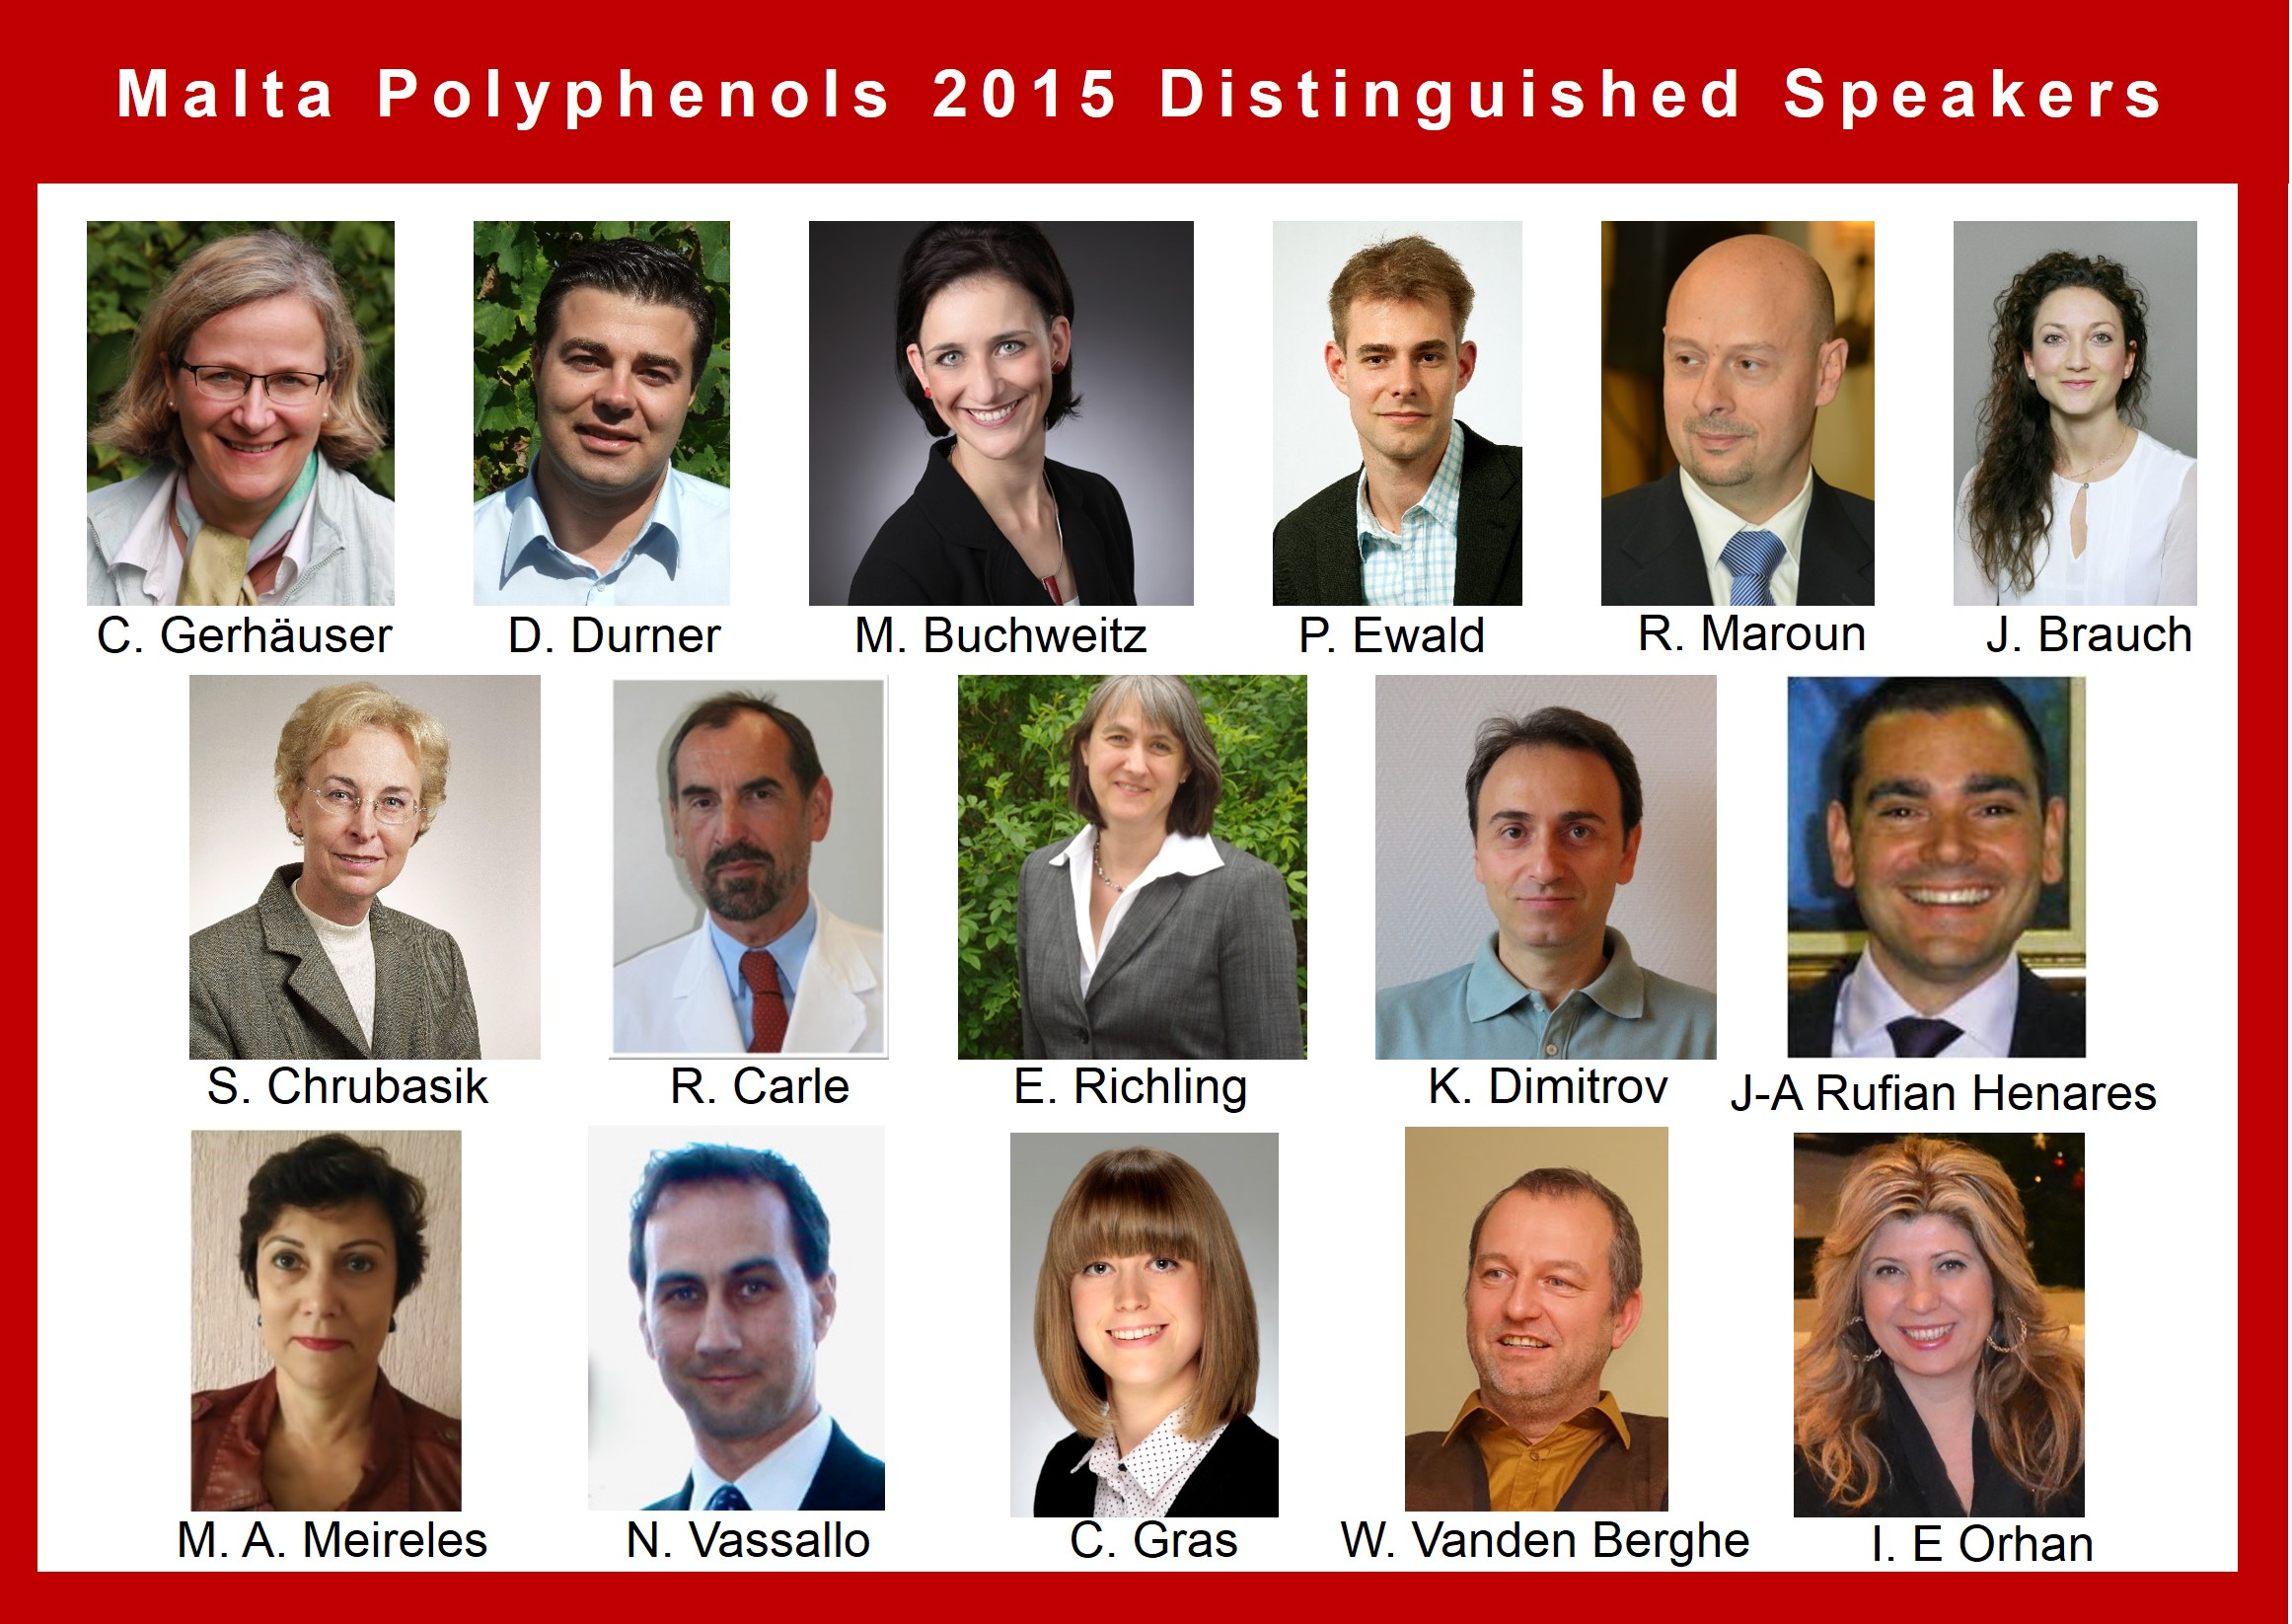 Distinguished Speakers will gather during Malta Polyphenols 2015